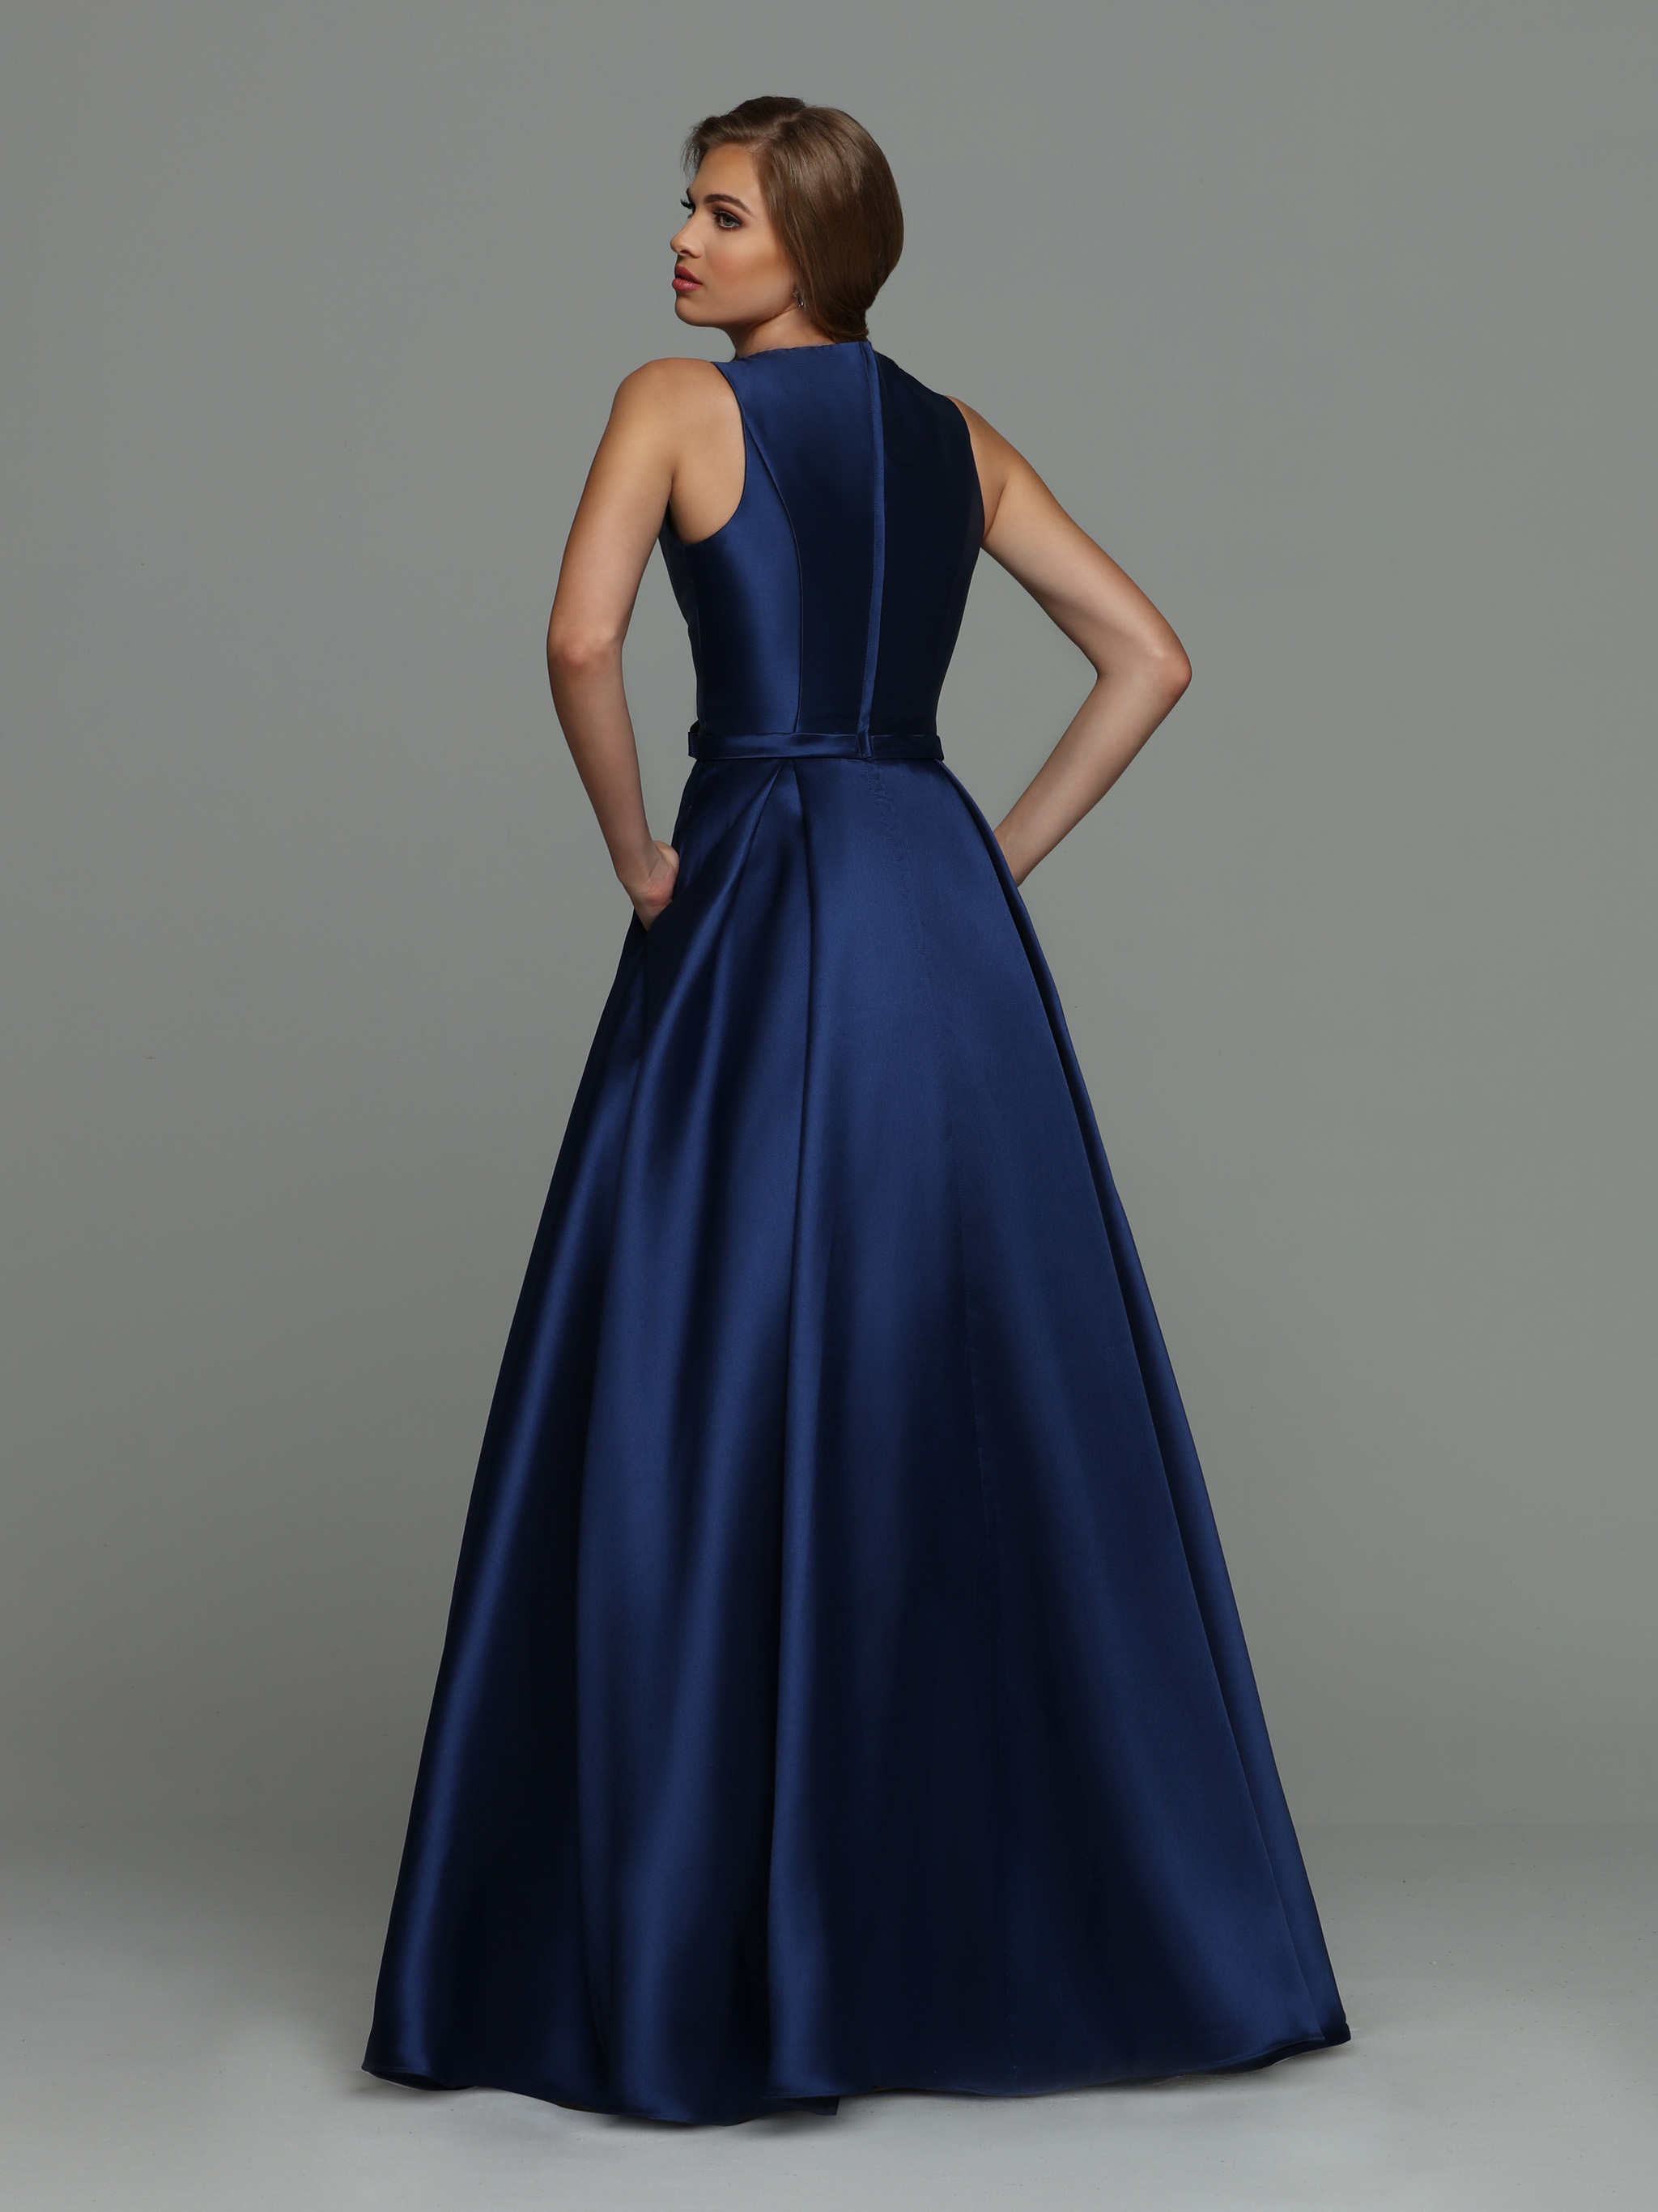 Image showing back view of style #71988